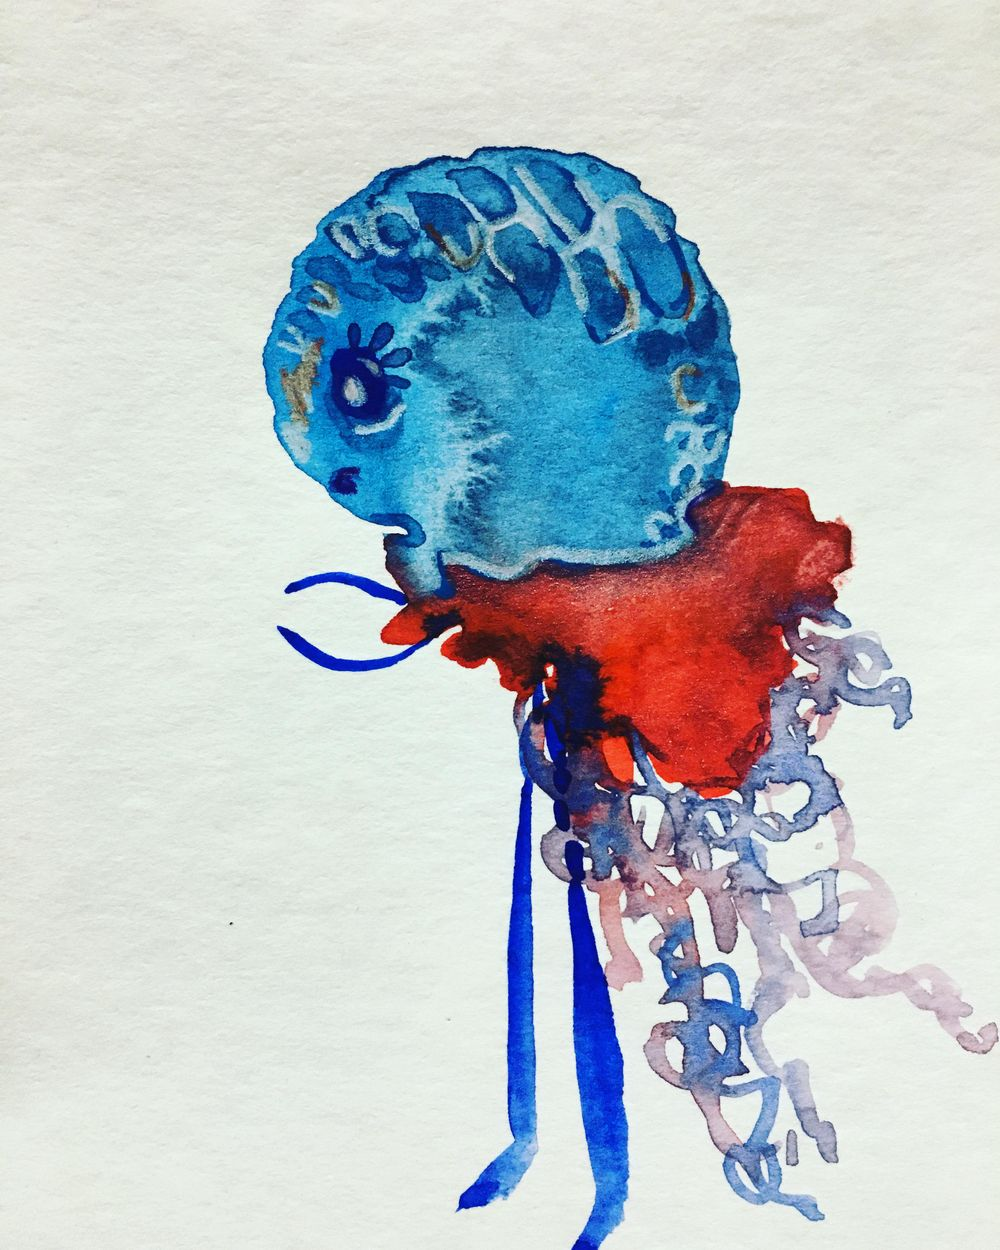 my blue friend - image 1 - student project